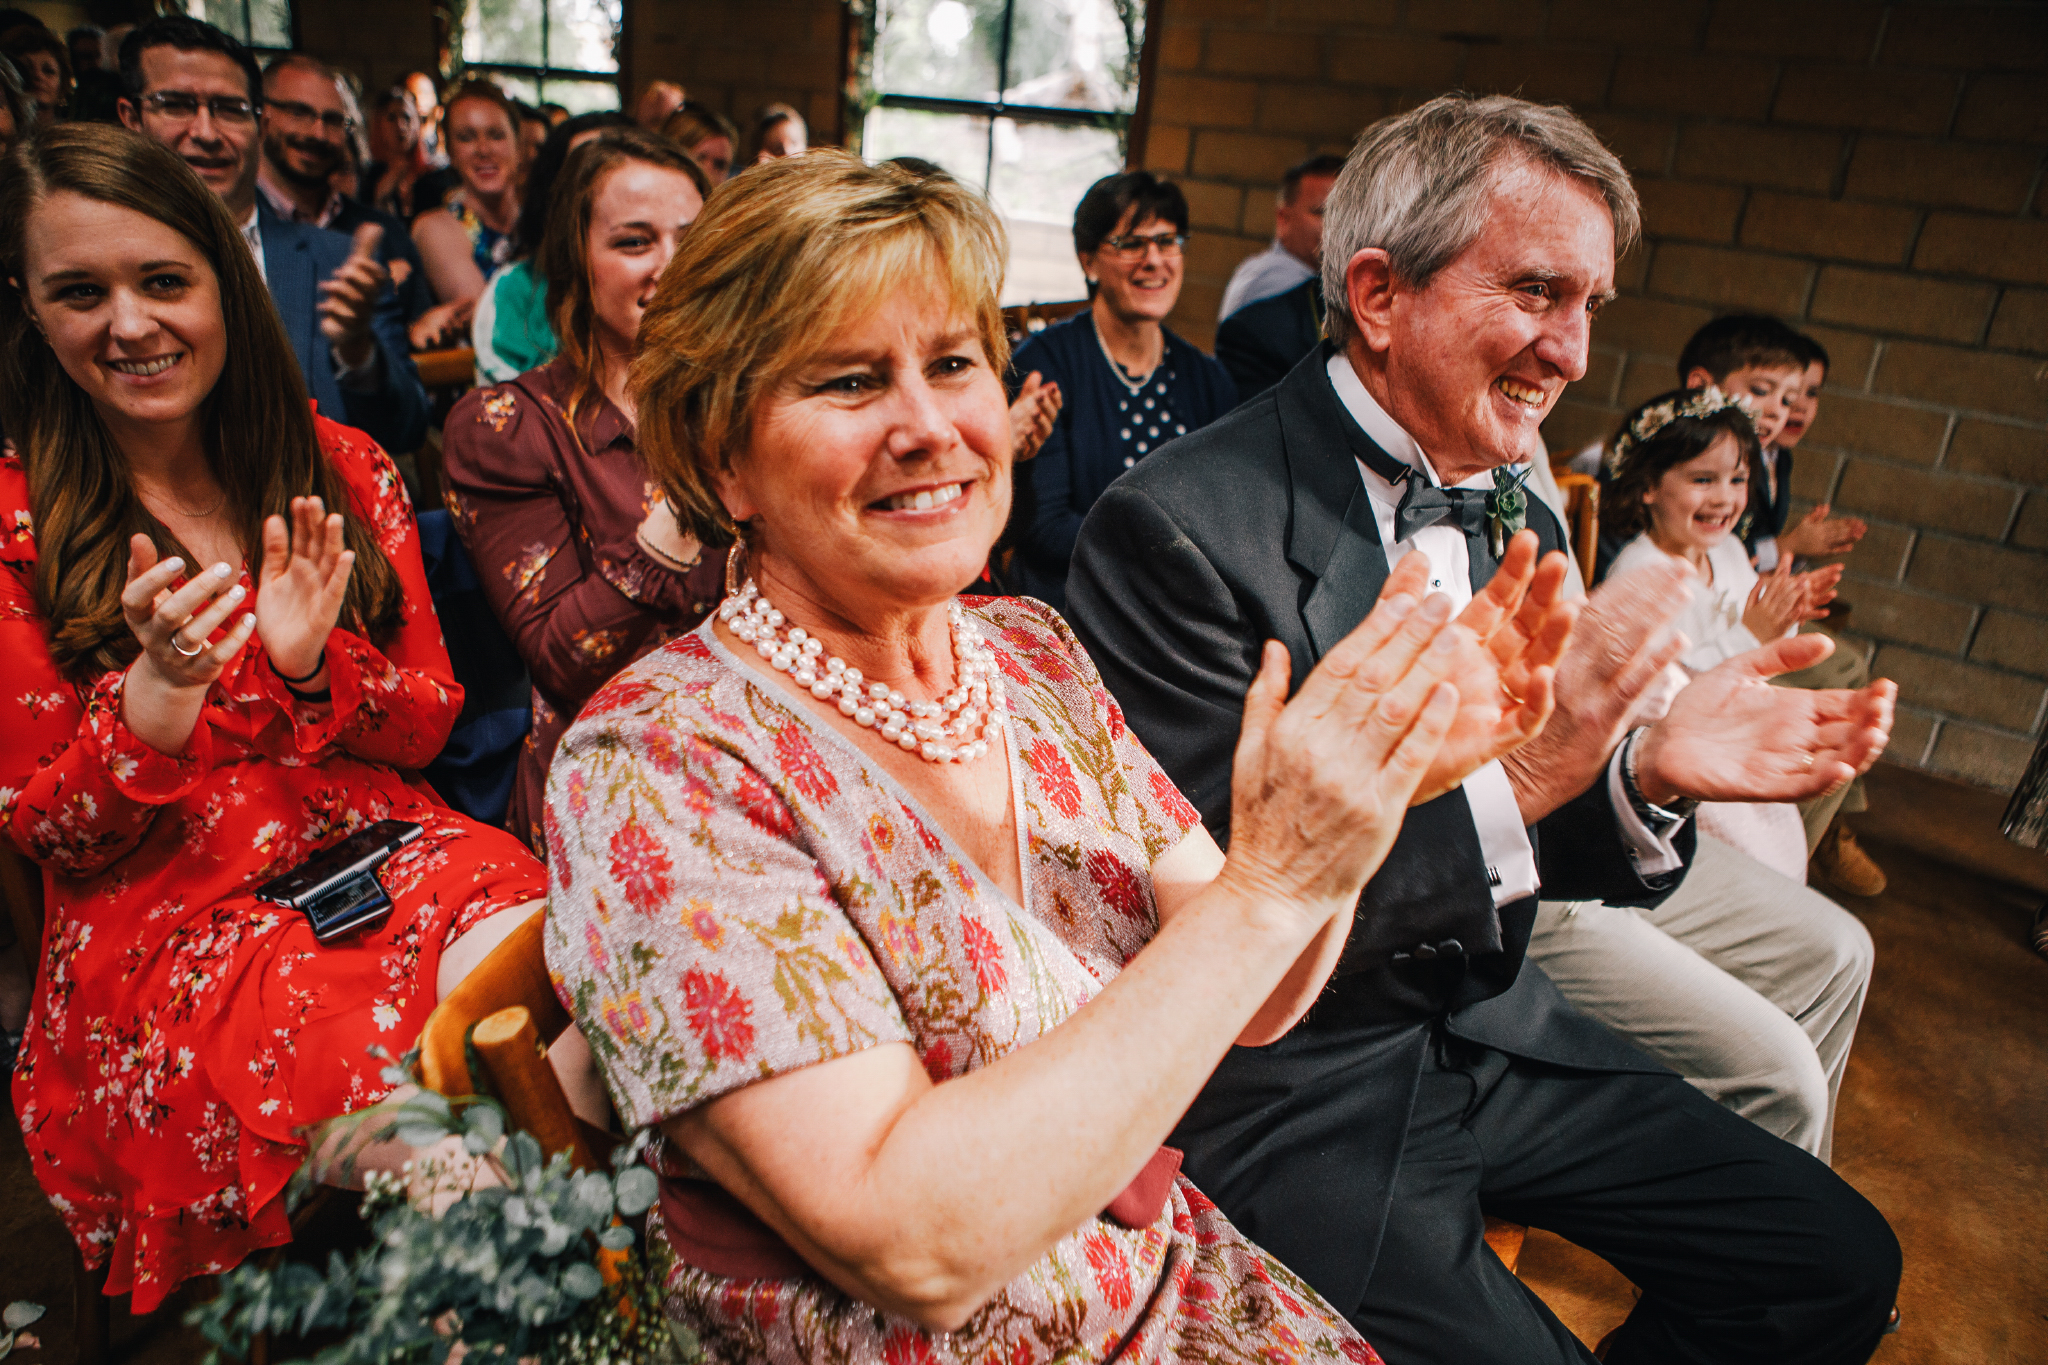 san diego wedding   photographer | middle aged woman smiling and applauding in the crowd at the   newly wed couple